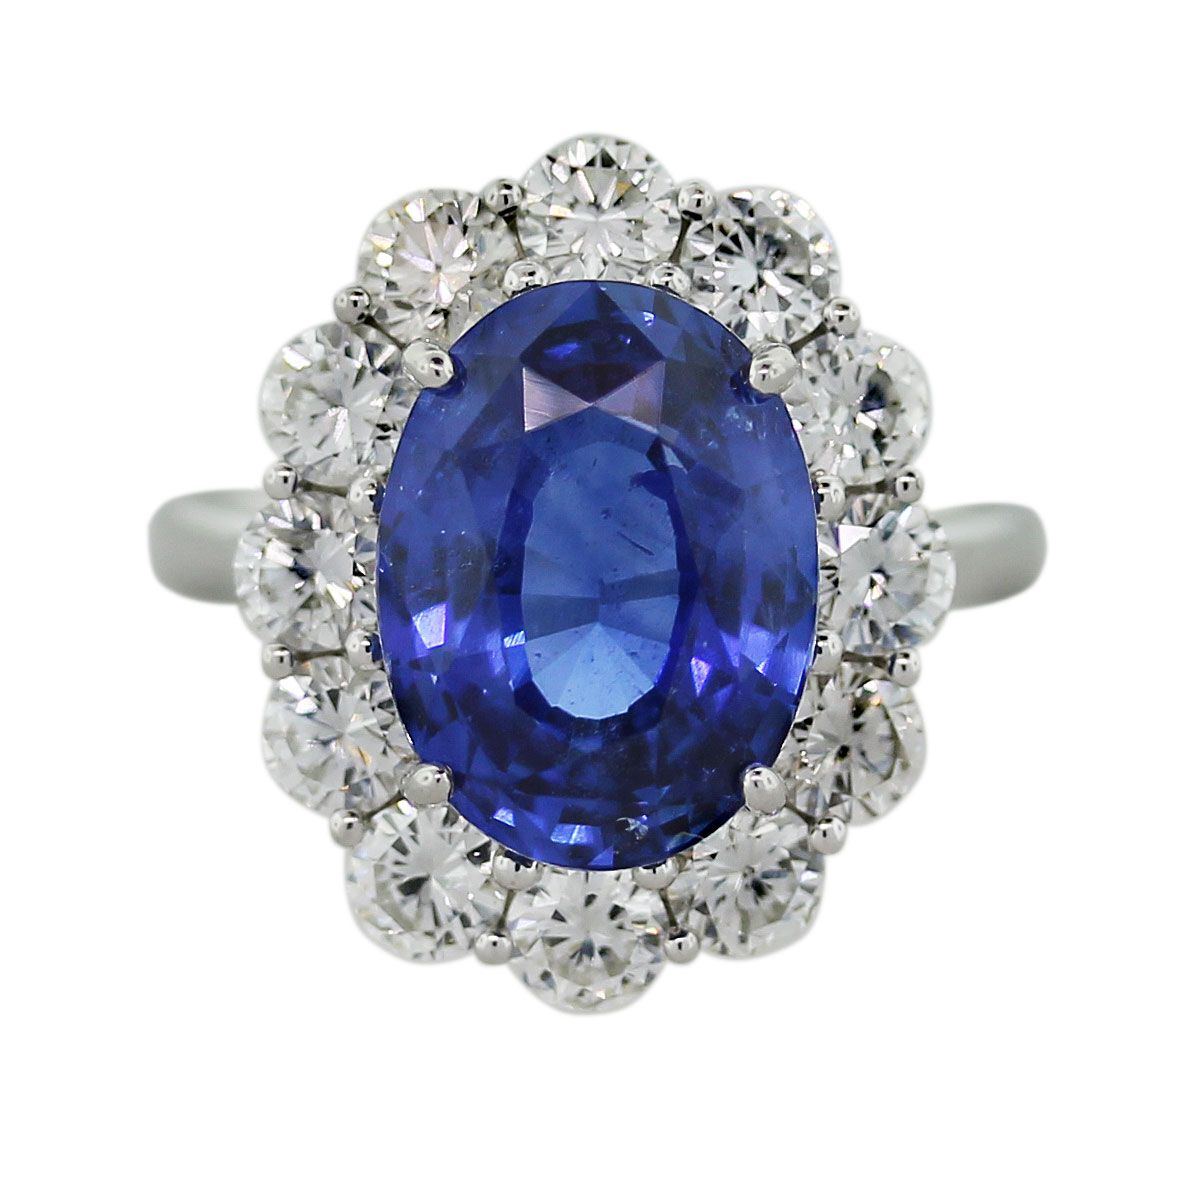 Blue Sapphire Diamond Platinum Cocktail Ring Boca Raton Platinum Engagement Rings Blue Sapphire Diamond Engagement Rings Sapphire